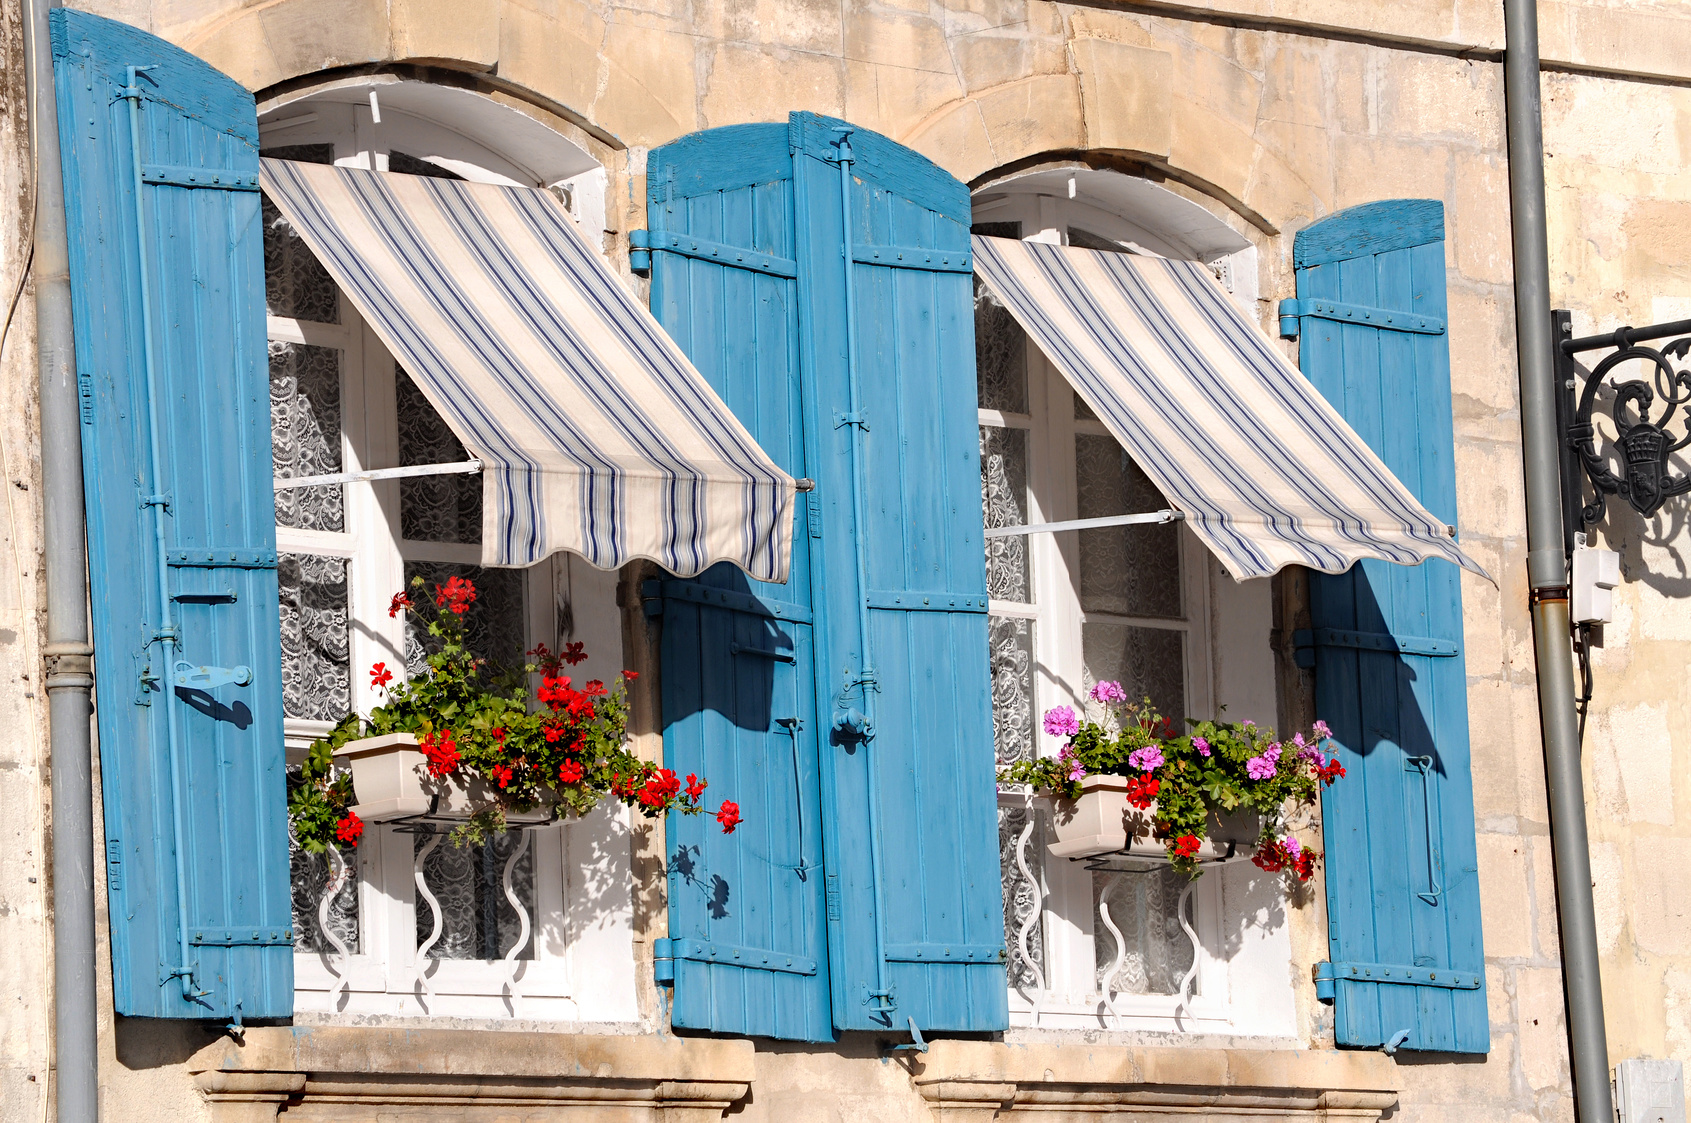 Provencal style of French blue window with flower window bed boxes